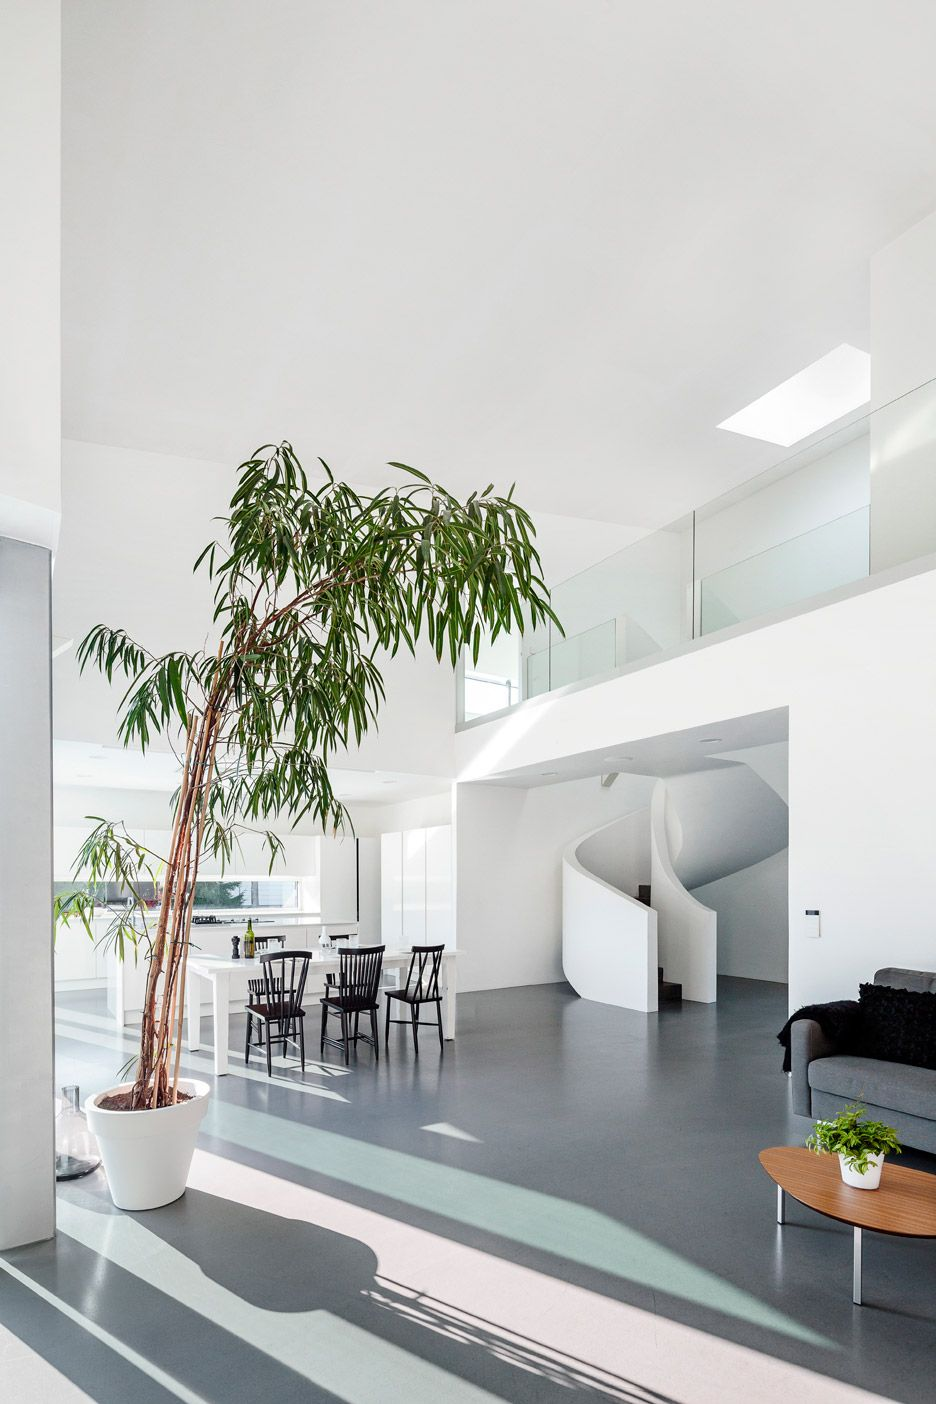 On the ground floor of this house, an open-plan space has a single ...